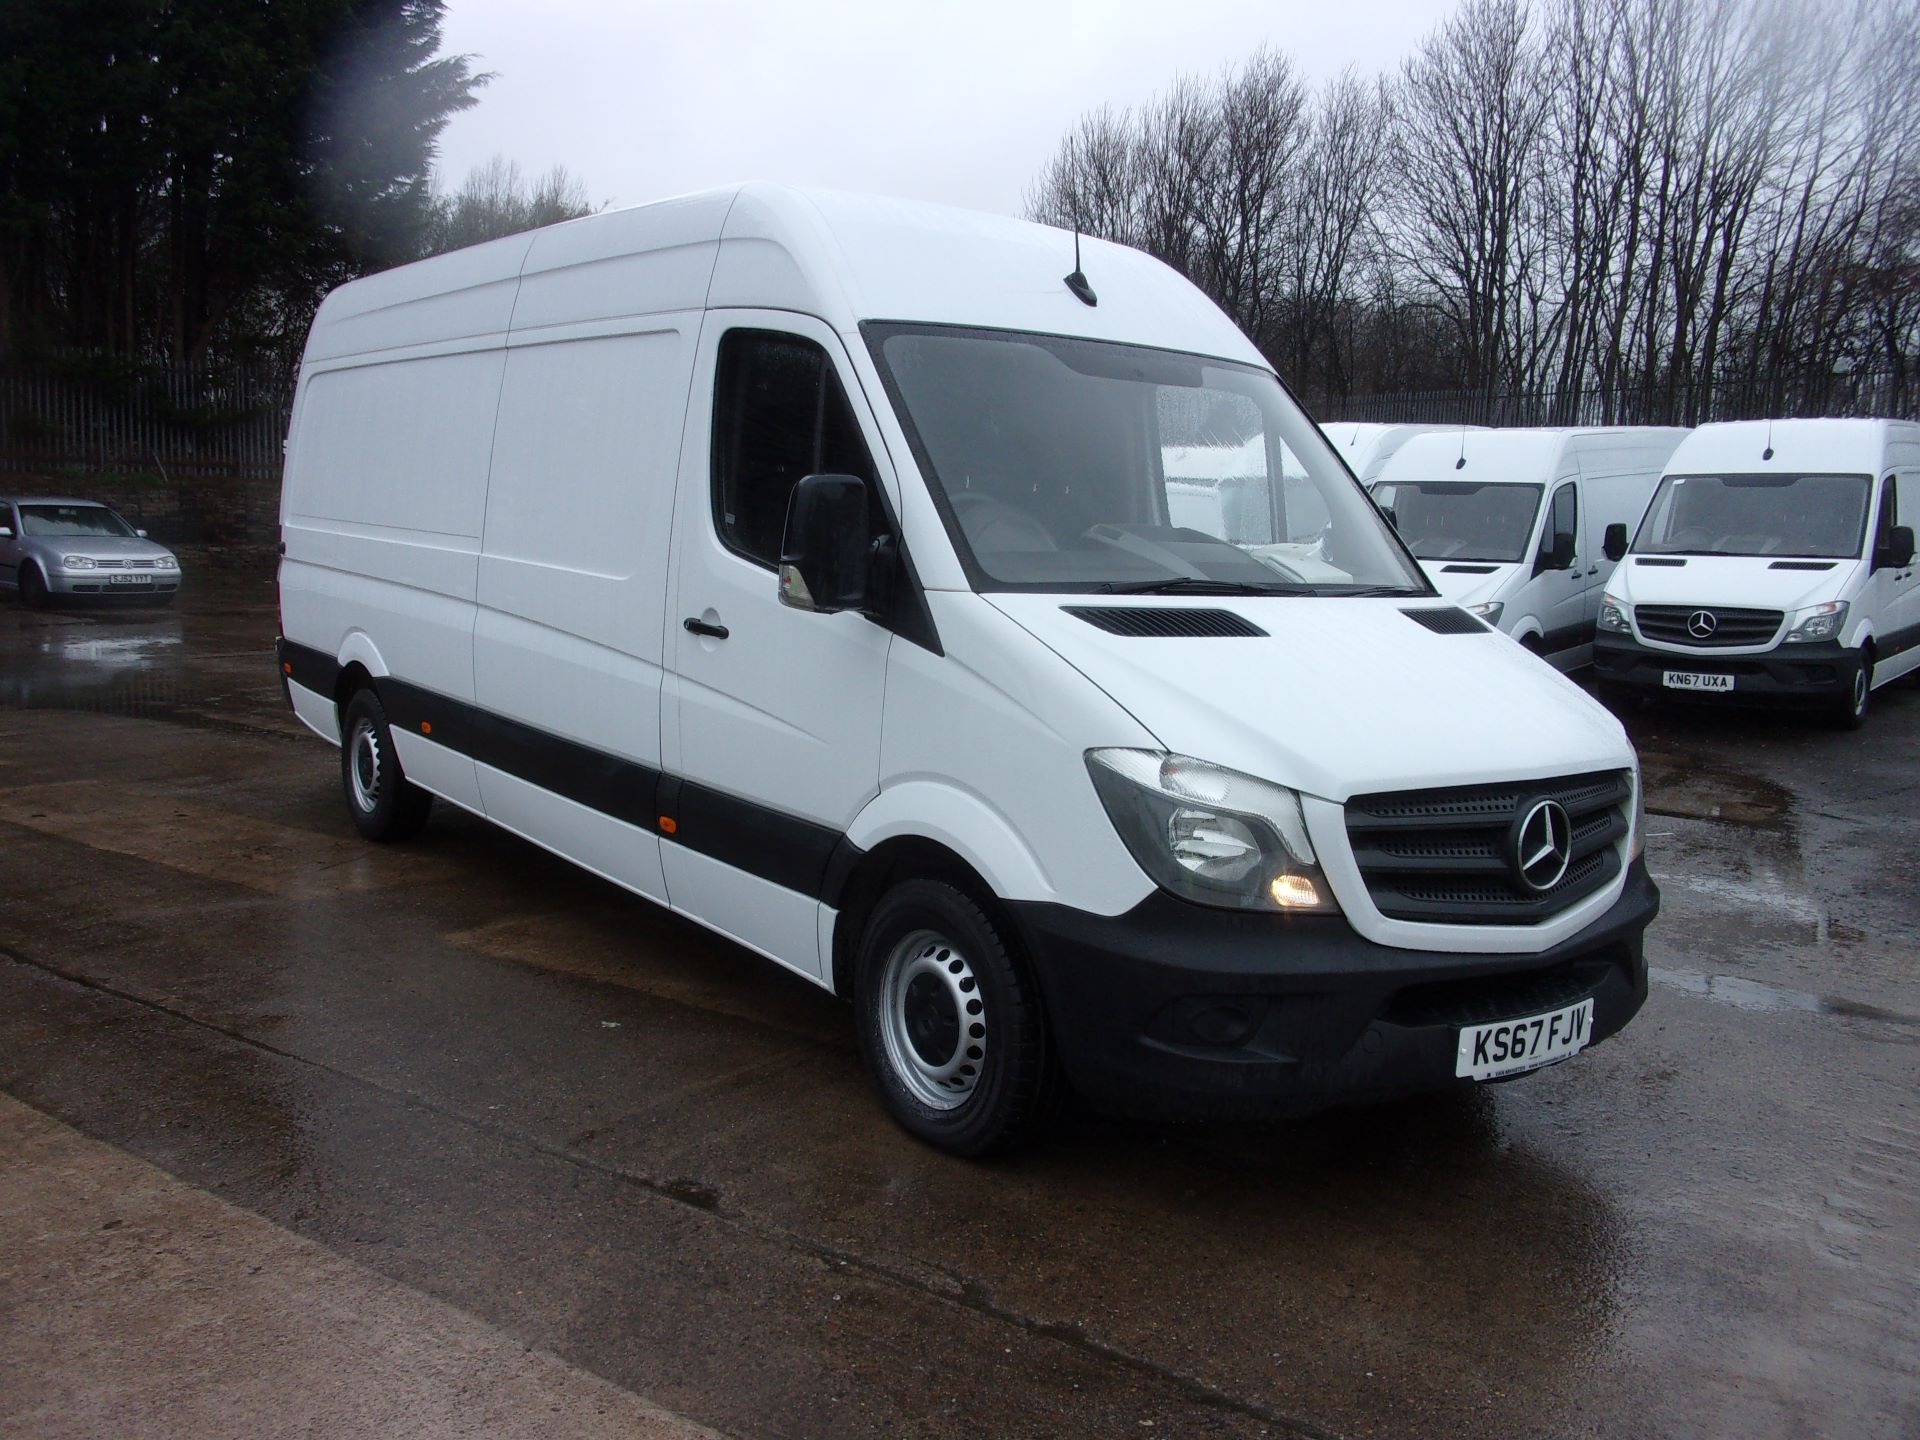 2017 Mercedes-Benz Sprinter 314 CDI LWB HIGH ROOF VAN EURO 6 (KS67FJV) Thumbnail 1